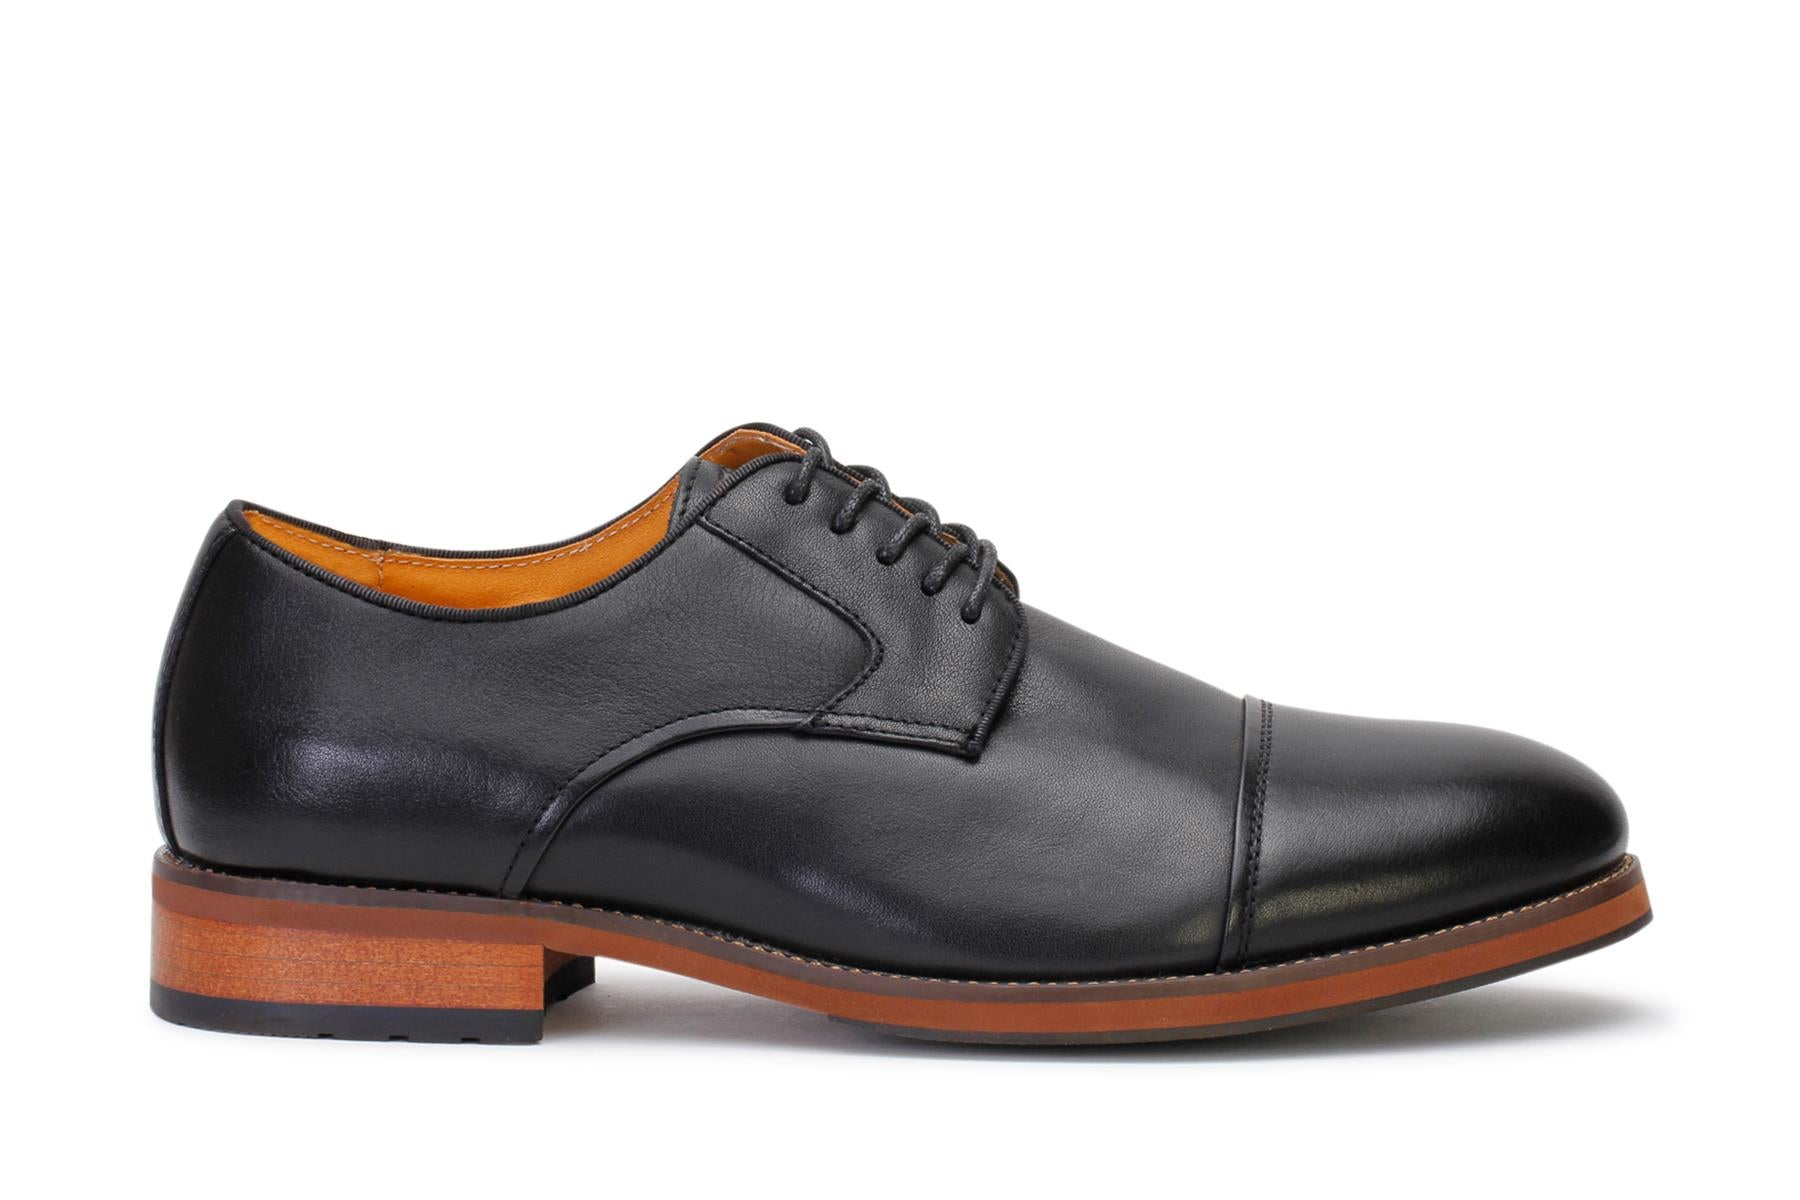 florsheim-mens-dress-shoes-blaze-cap-toe-oxford-black-leather-main